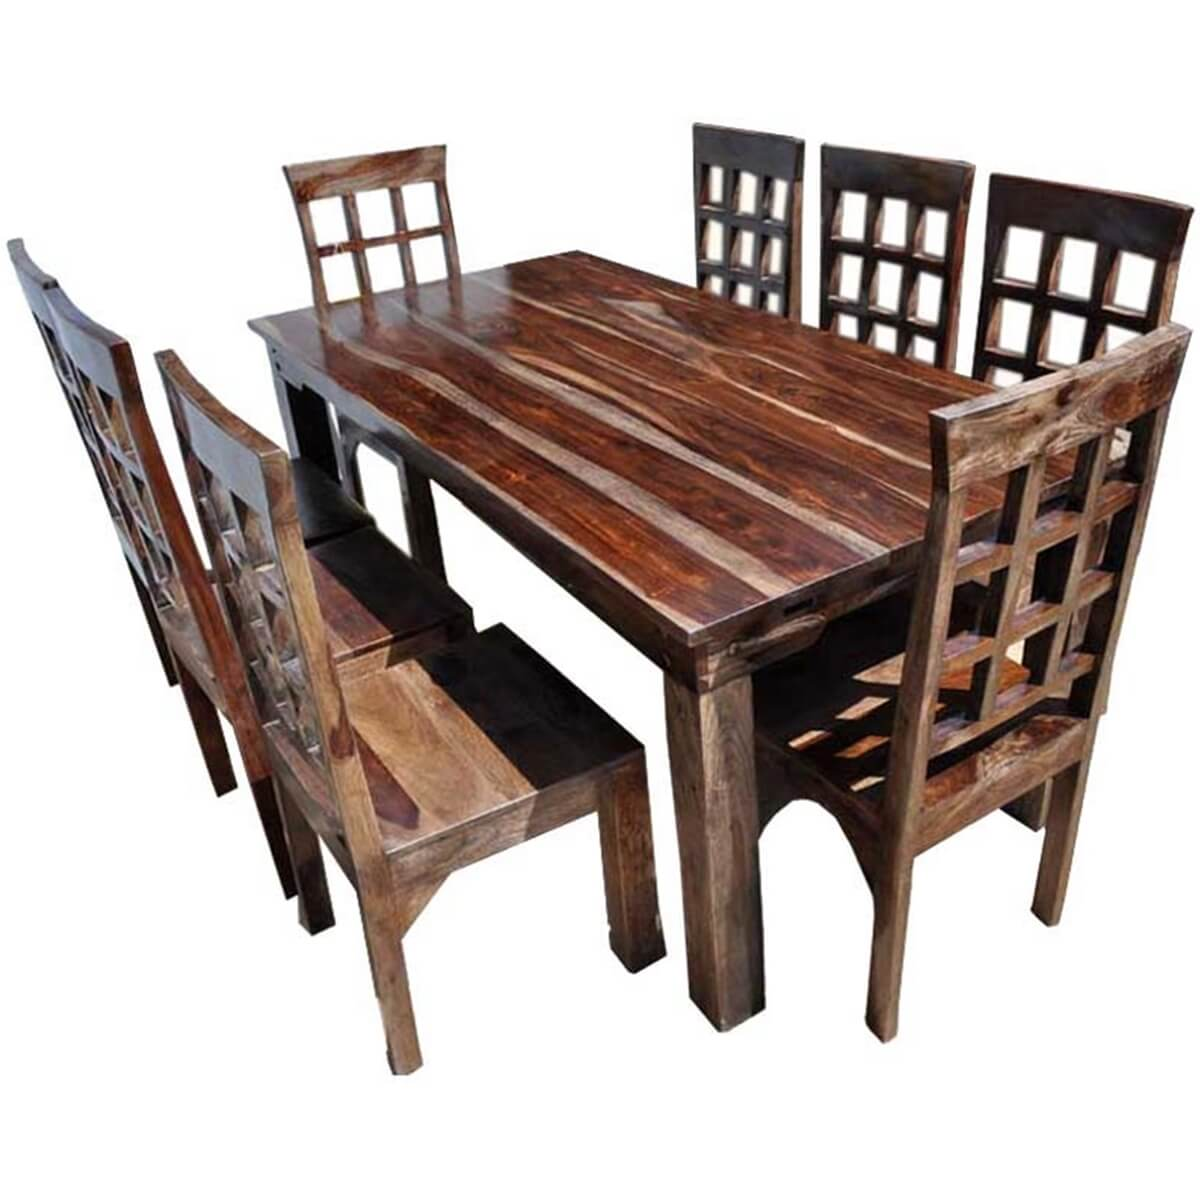 Dining room set rustic - Portland Rustic Furniture Dining Room Table Chair Set W Extension